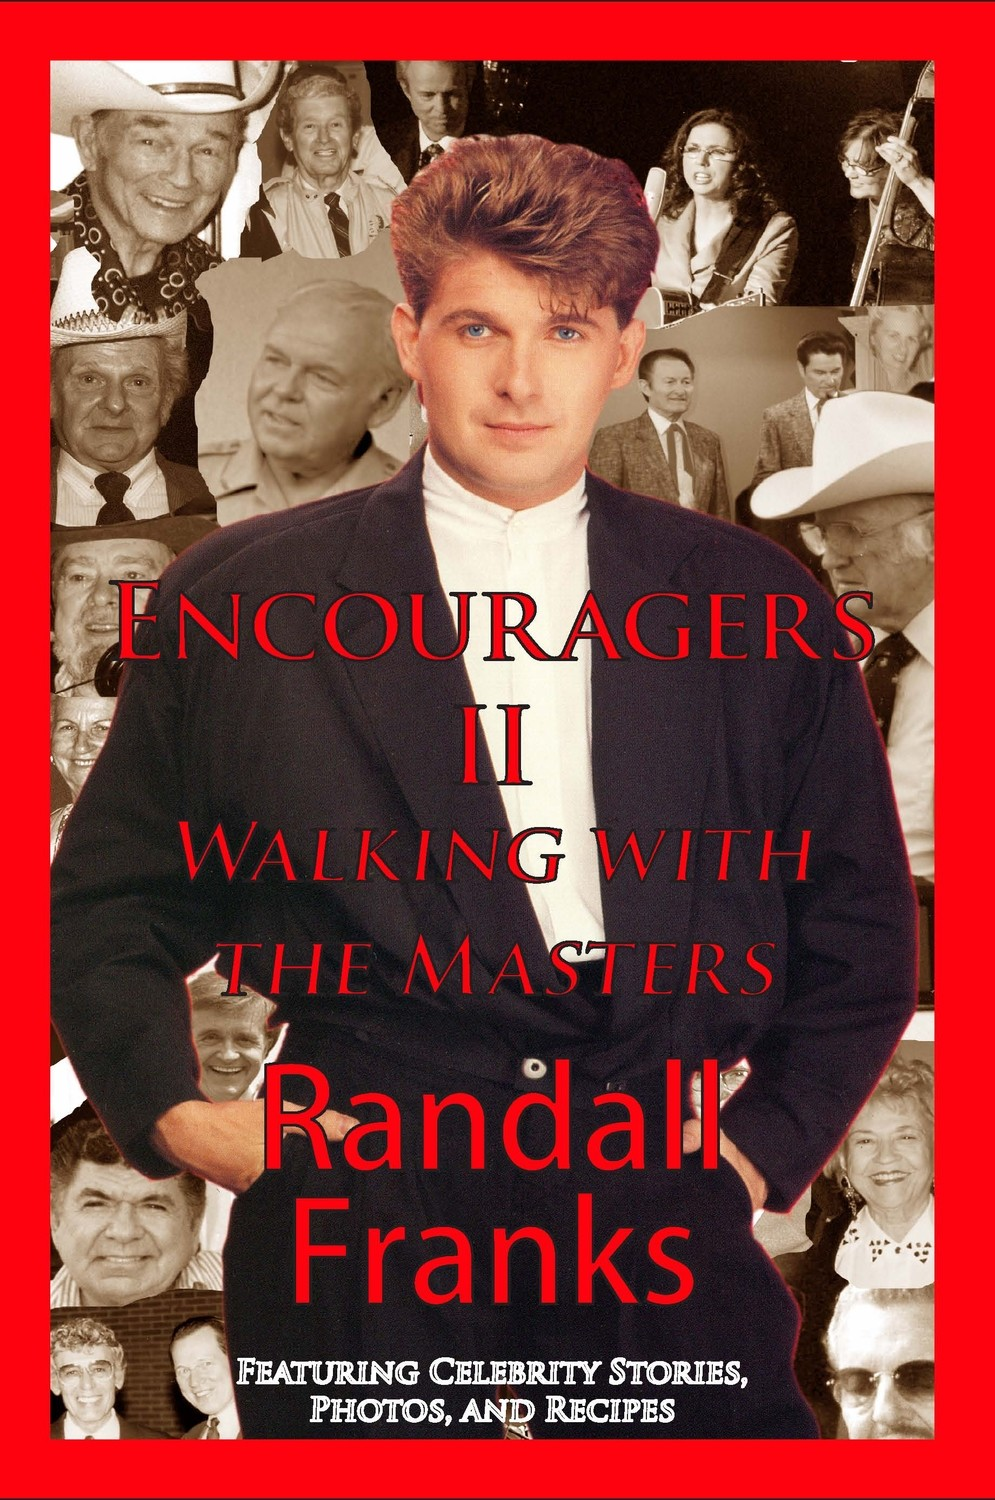 Encouragers II : Walking With The Masters by Randall Franks